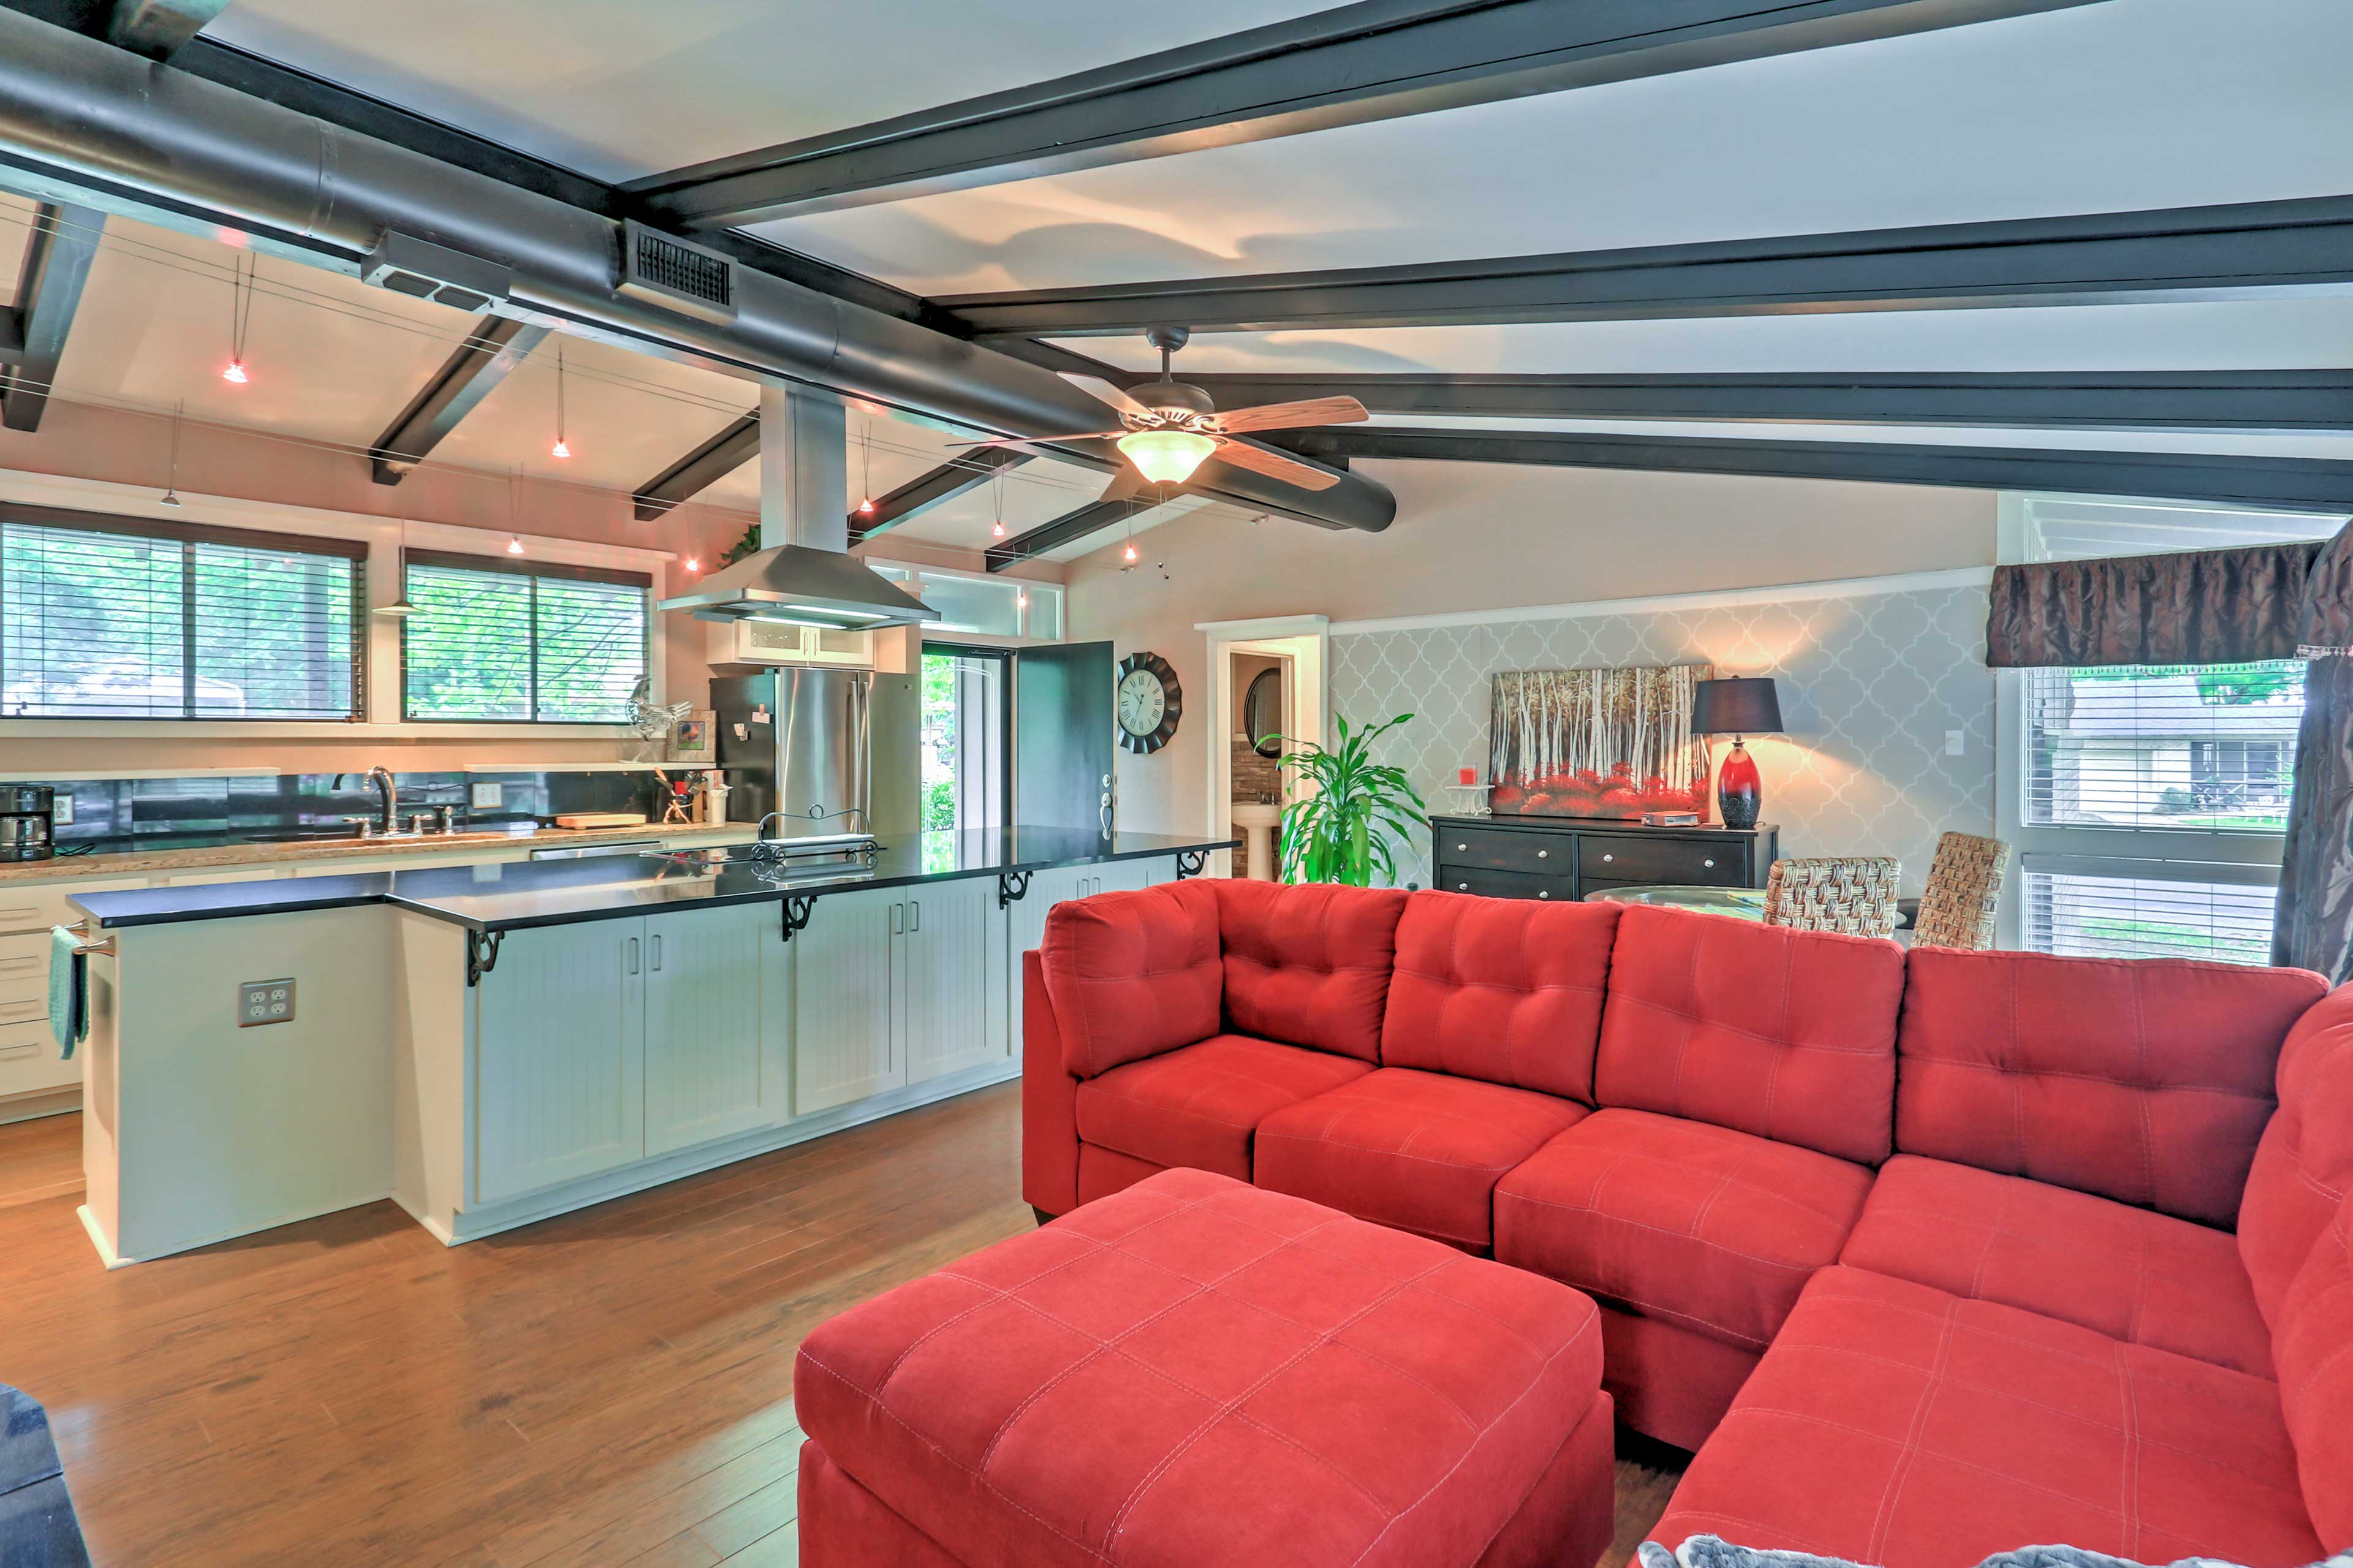 This 3-bedroom, 2-bath vacation rental sleeps 6 - perfect for 2 small families!